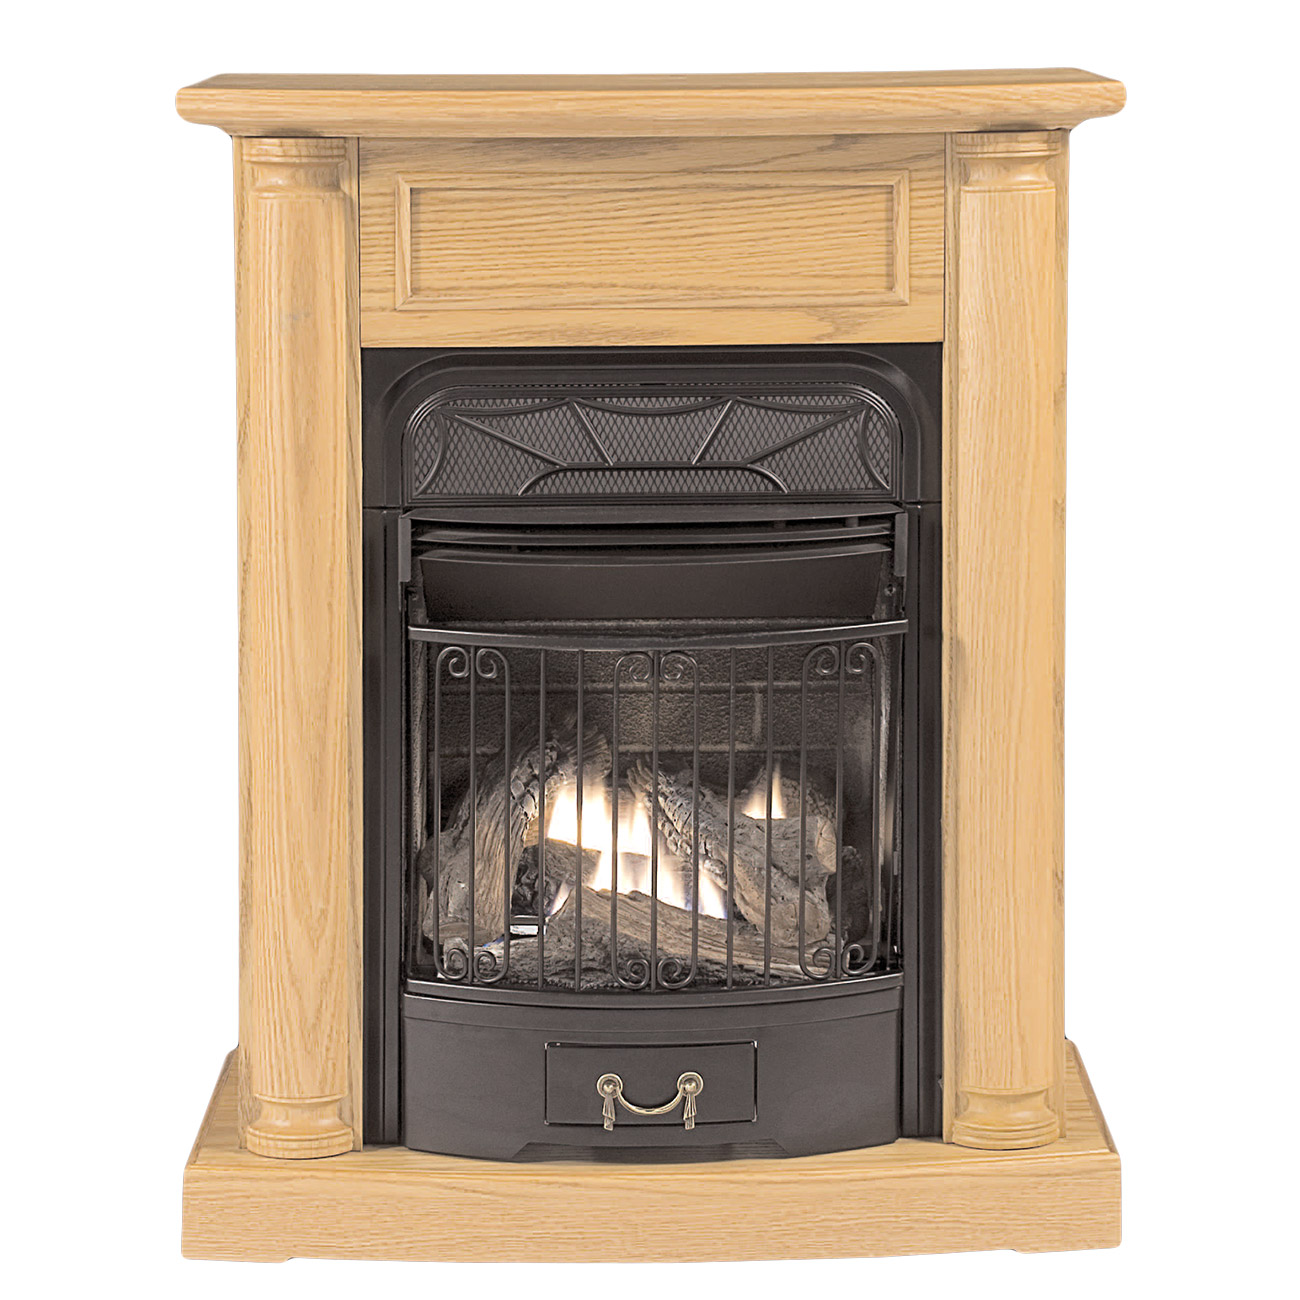 Ventless Fireplace: Ventless Fireplace Model# EDP200T-O